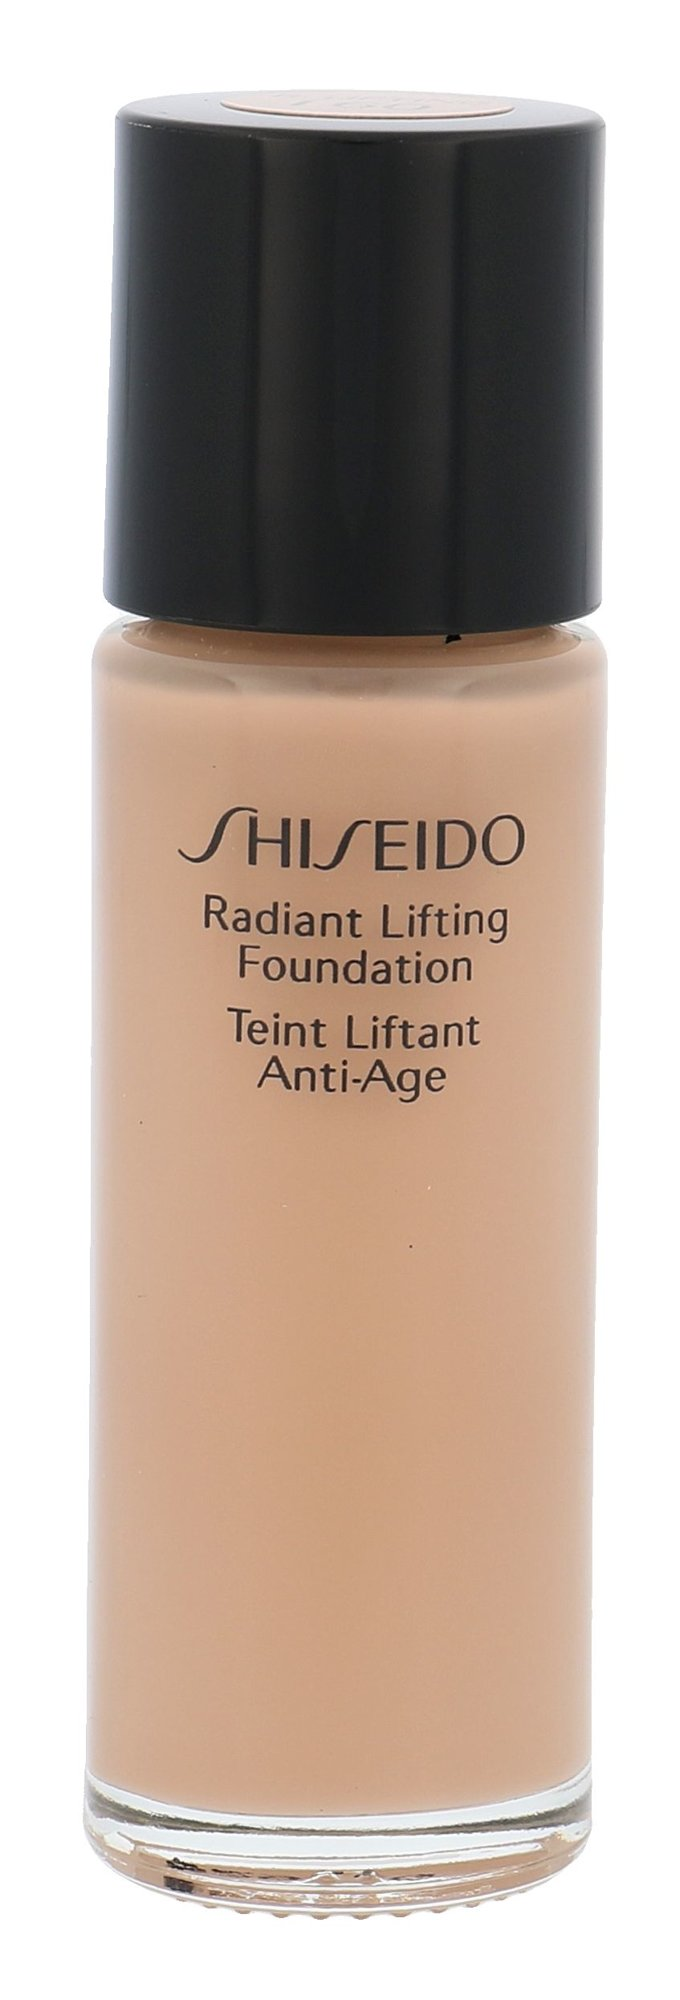 Shiseido Radiant Lifting Foundation Cosmetic 15ml I60 Natural Deep Ivory